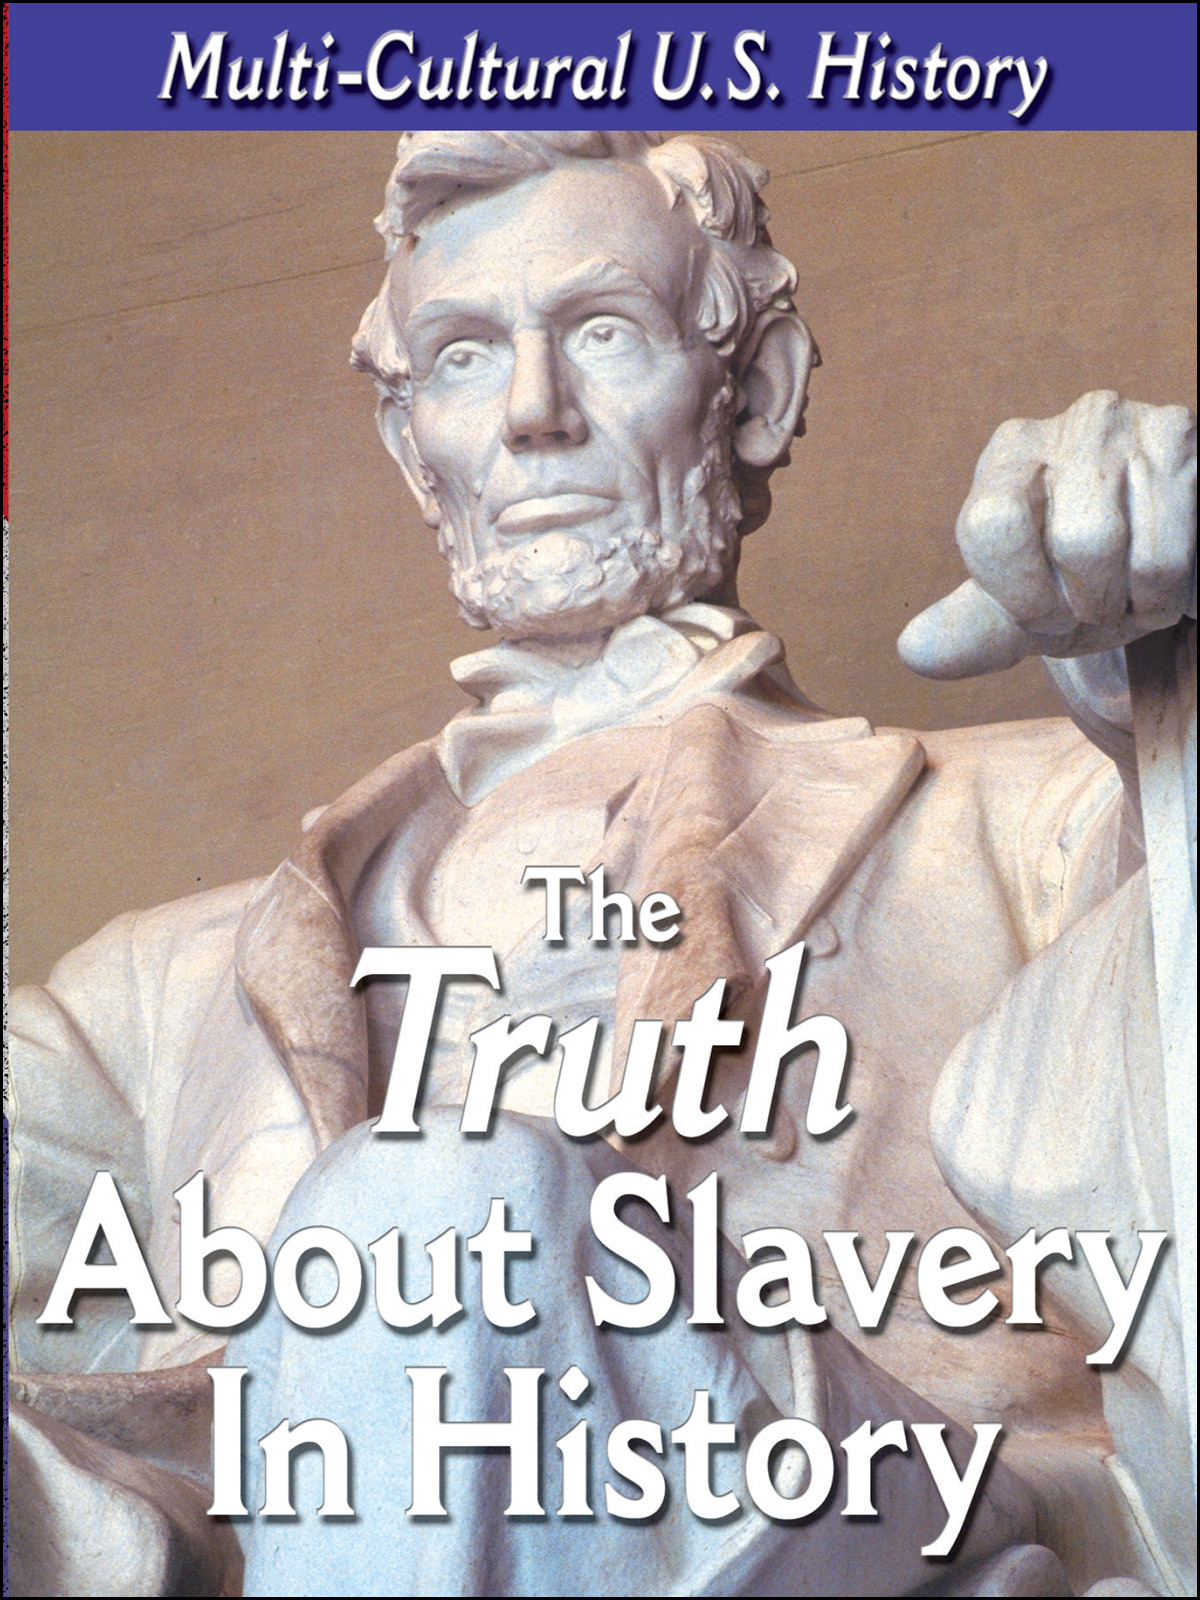 L923 - The History of the United States The Truth About Slavery